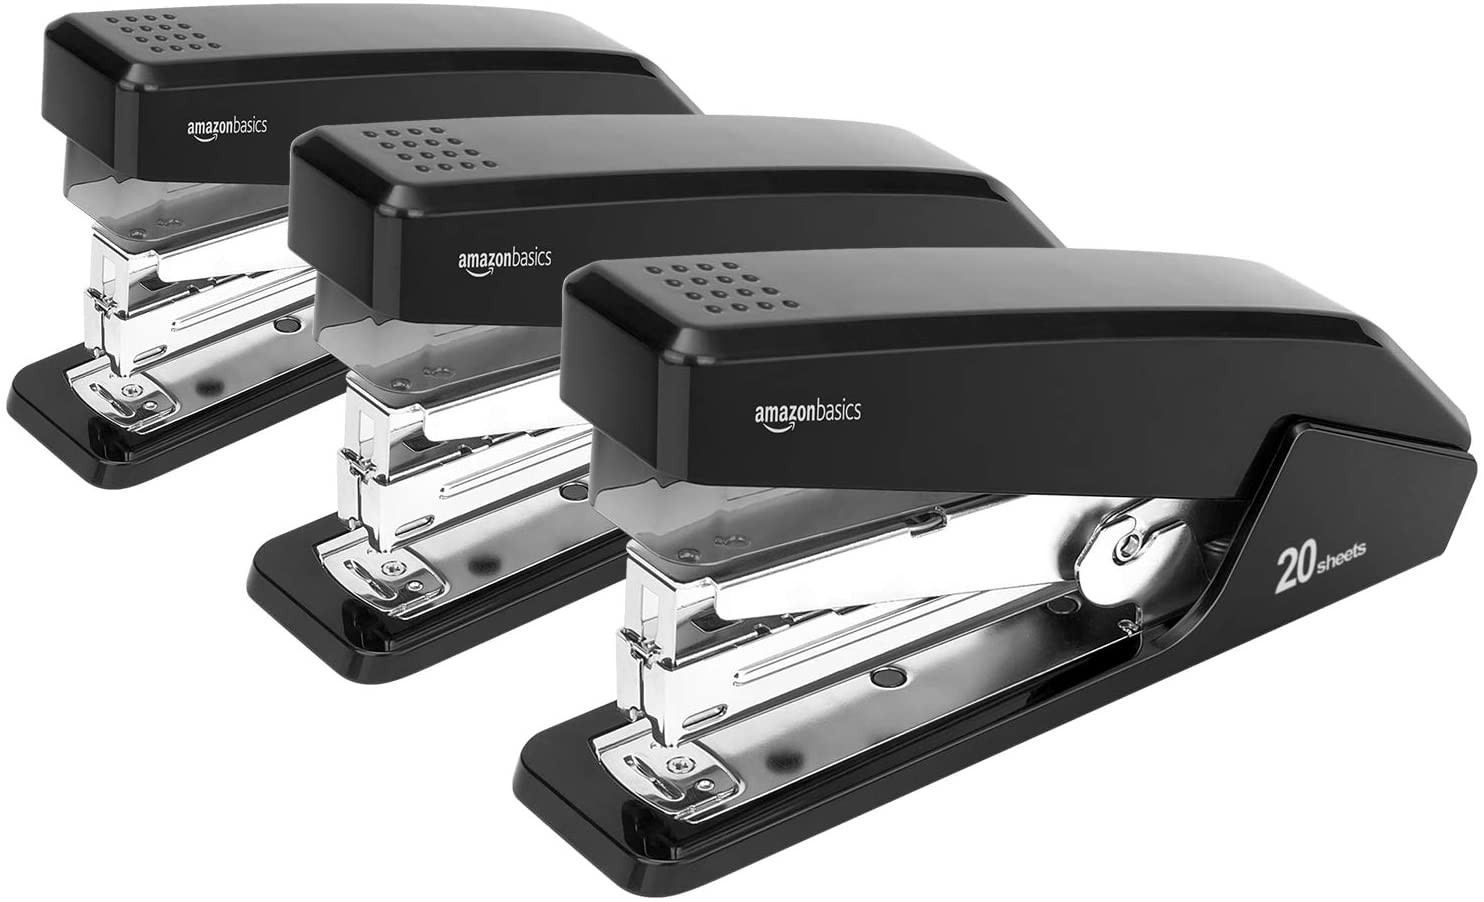 DHgateBasics Reduced Effort Desktop Stapler, Full-Strip, 20 Sheet Capacity - Black, 3 pack